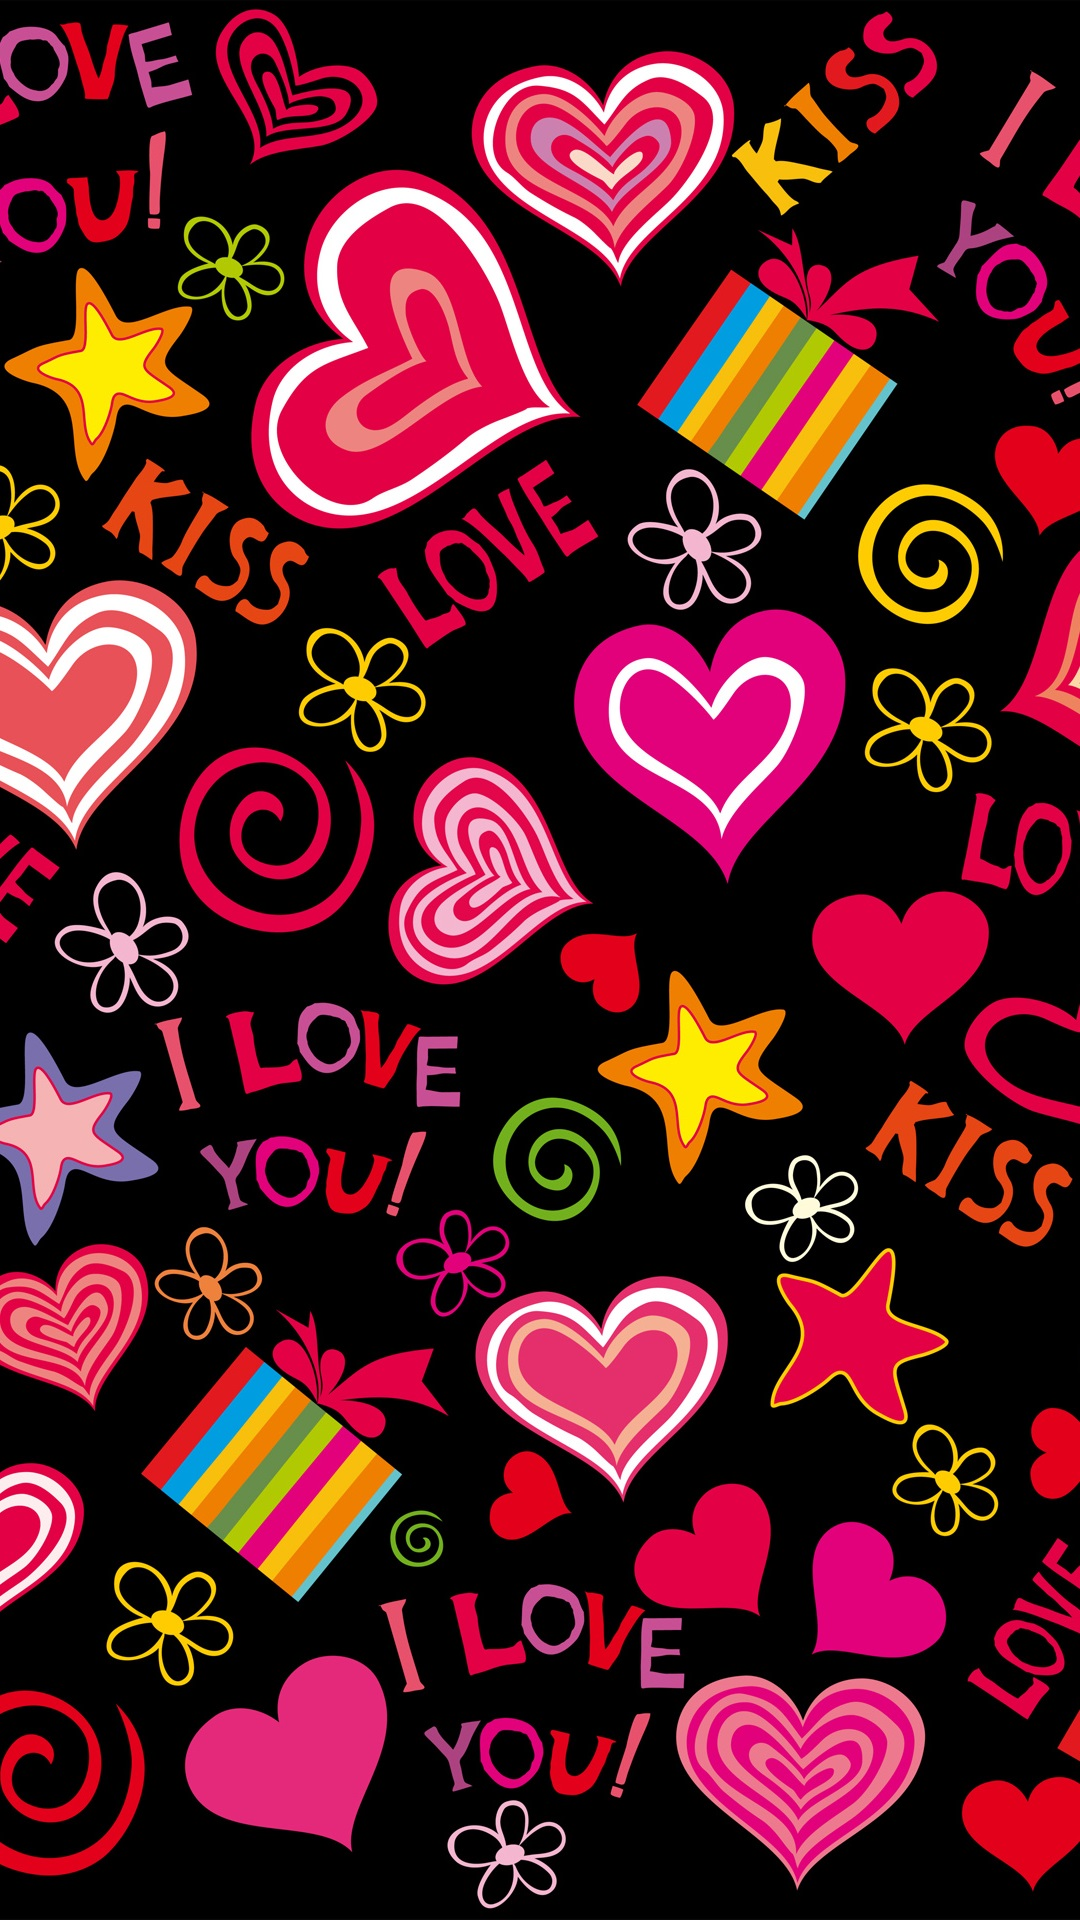 I Love You Wallpapers For Iphone 4 : colorful love hearts, sweet, vector, romantic iPhone Wallpaper 1080x1920 iPhone 6 (6S) Plus ...